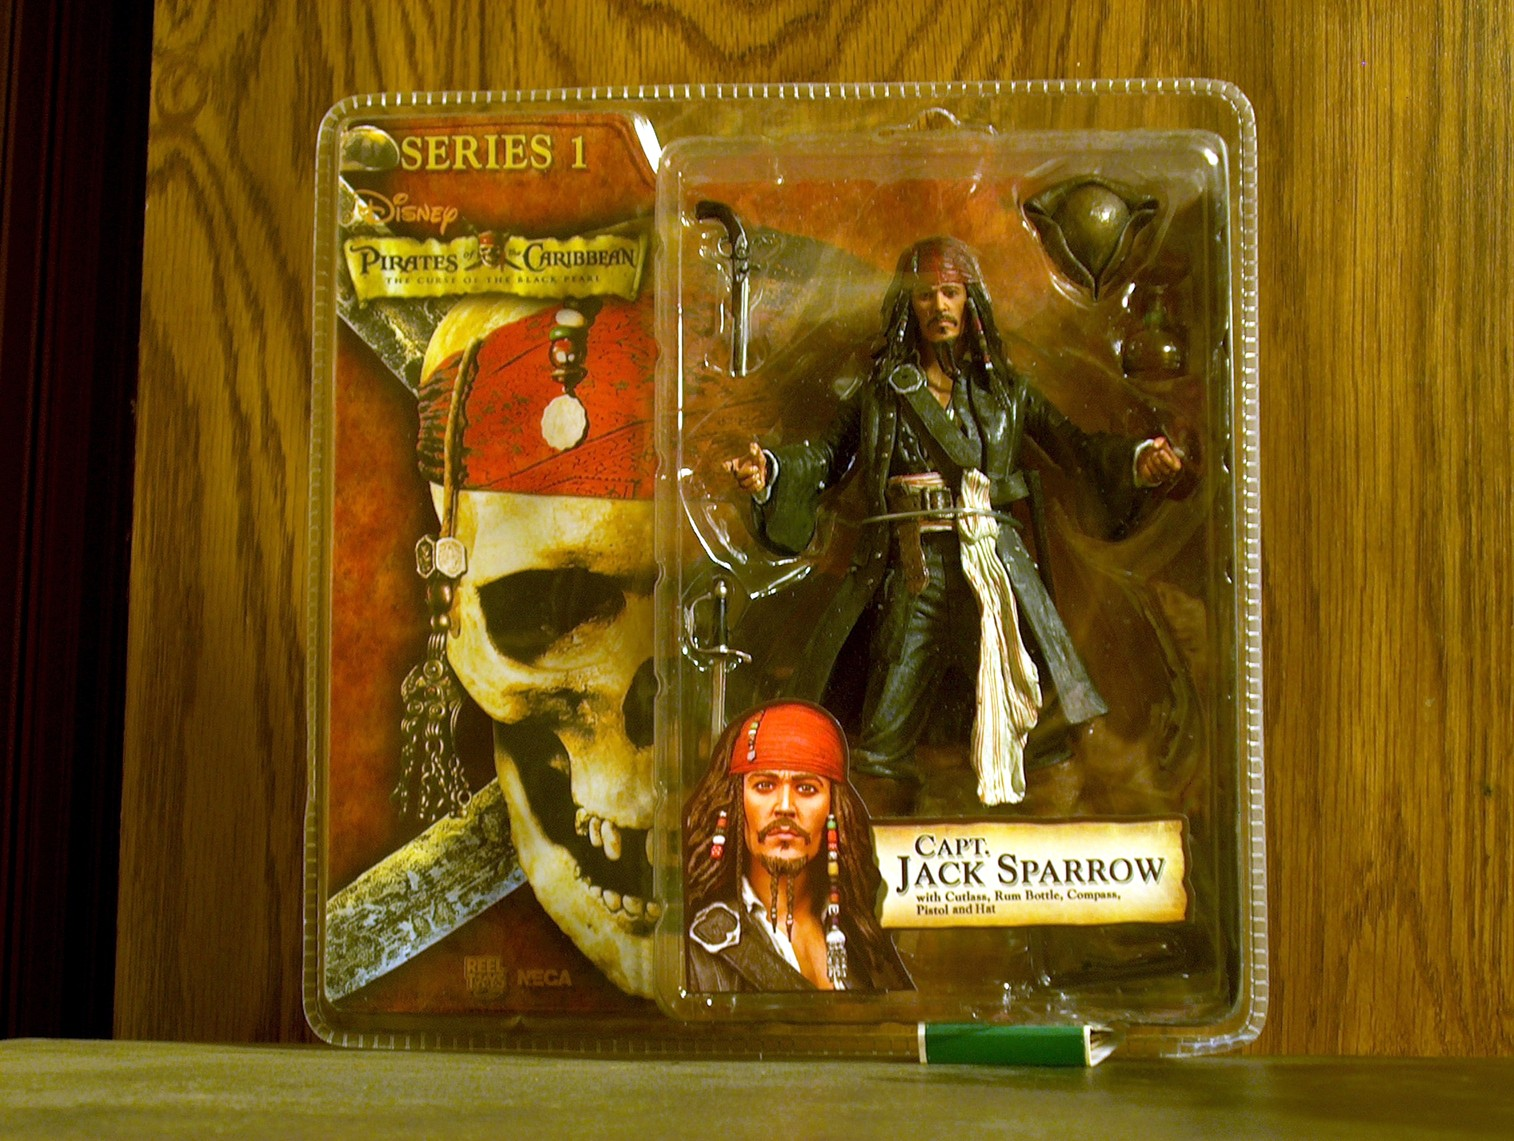 Captain Jack Sparrow (Serious)